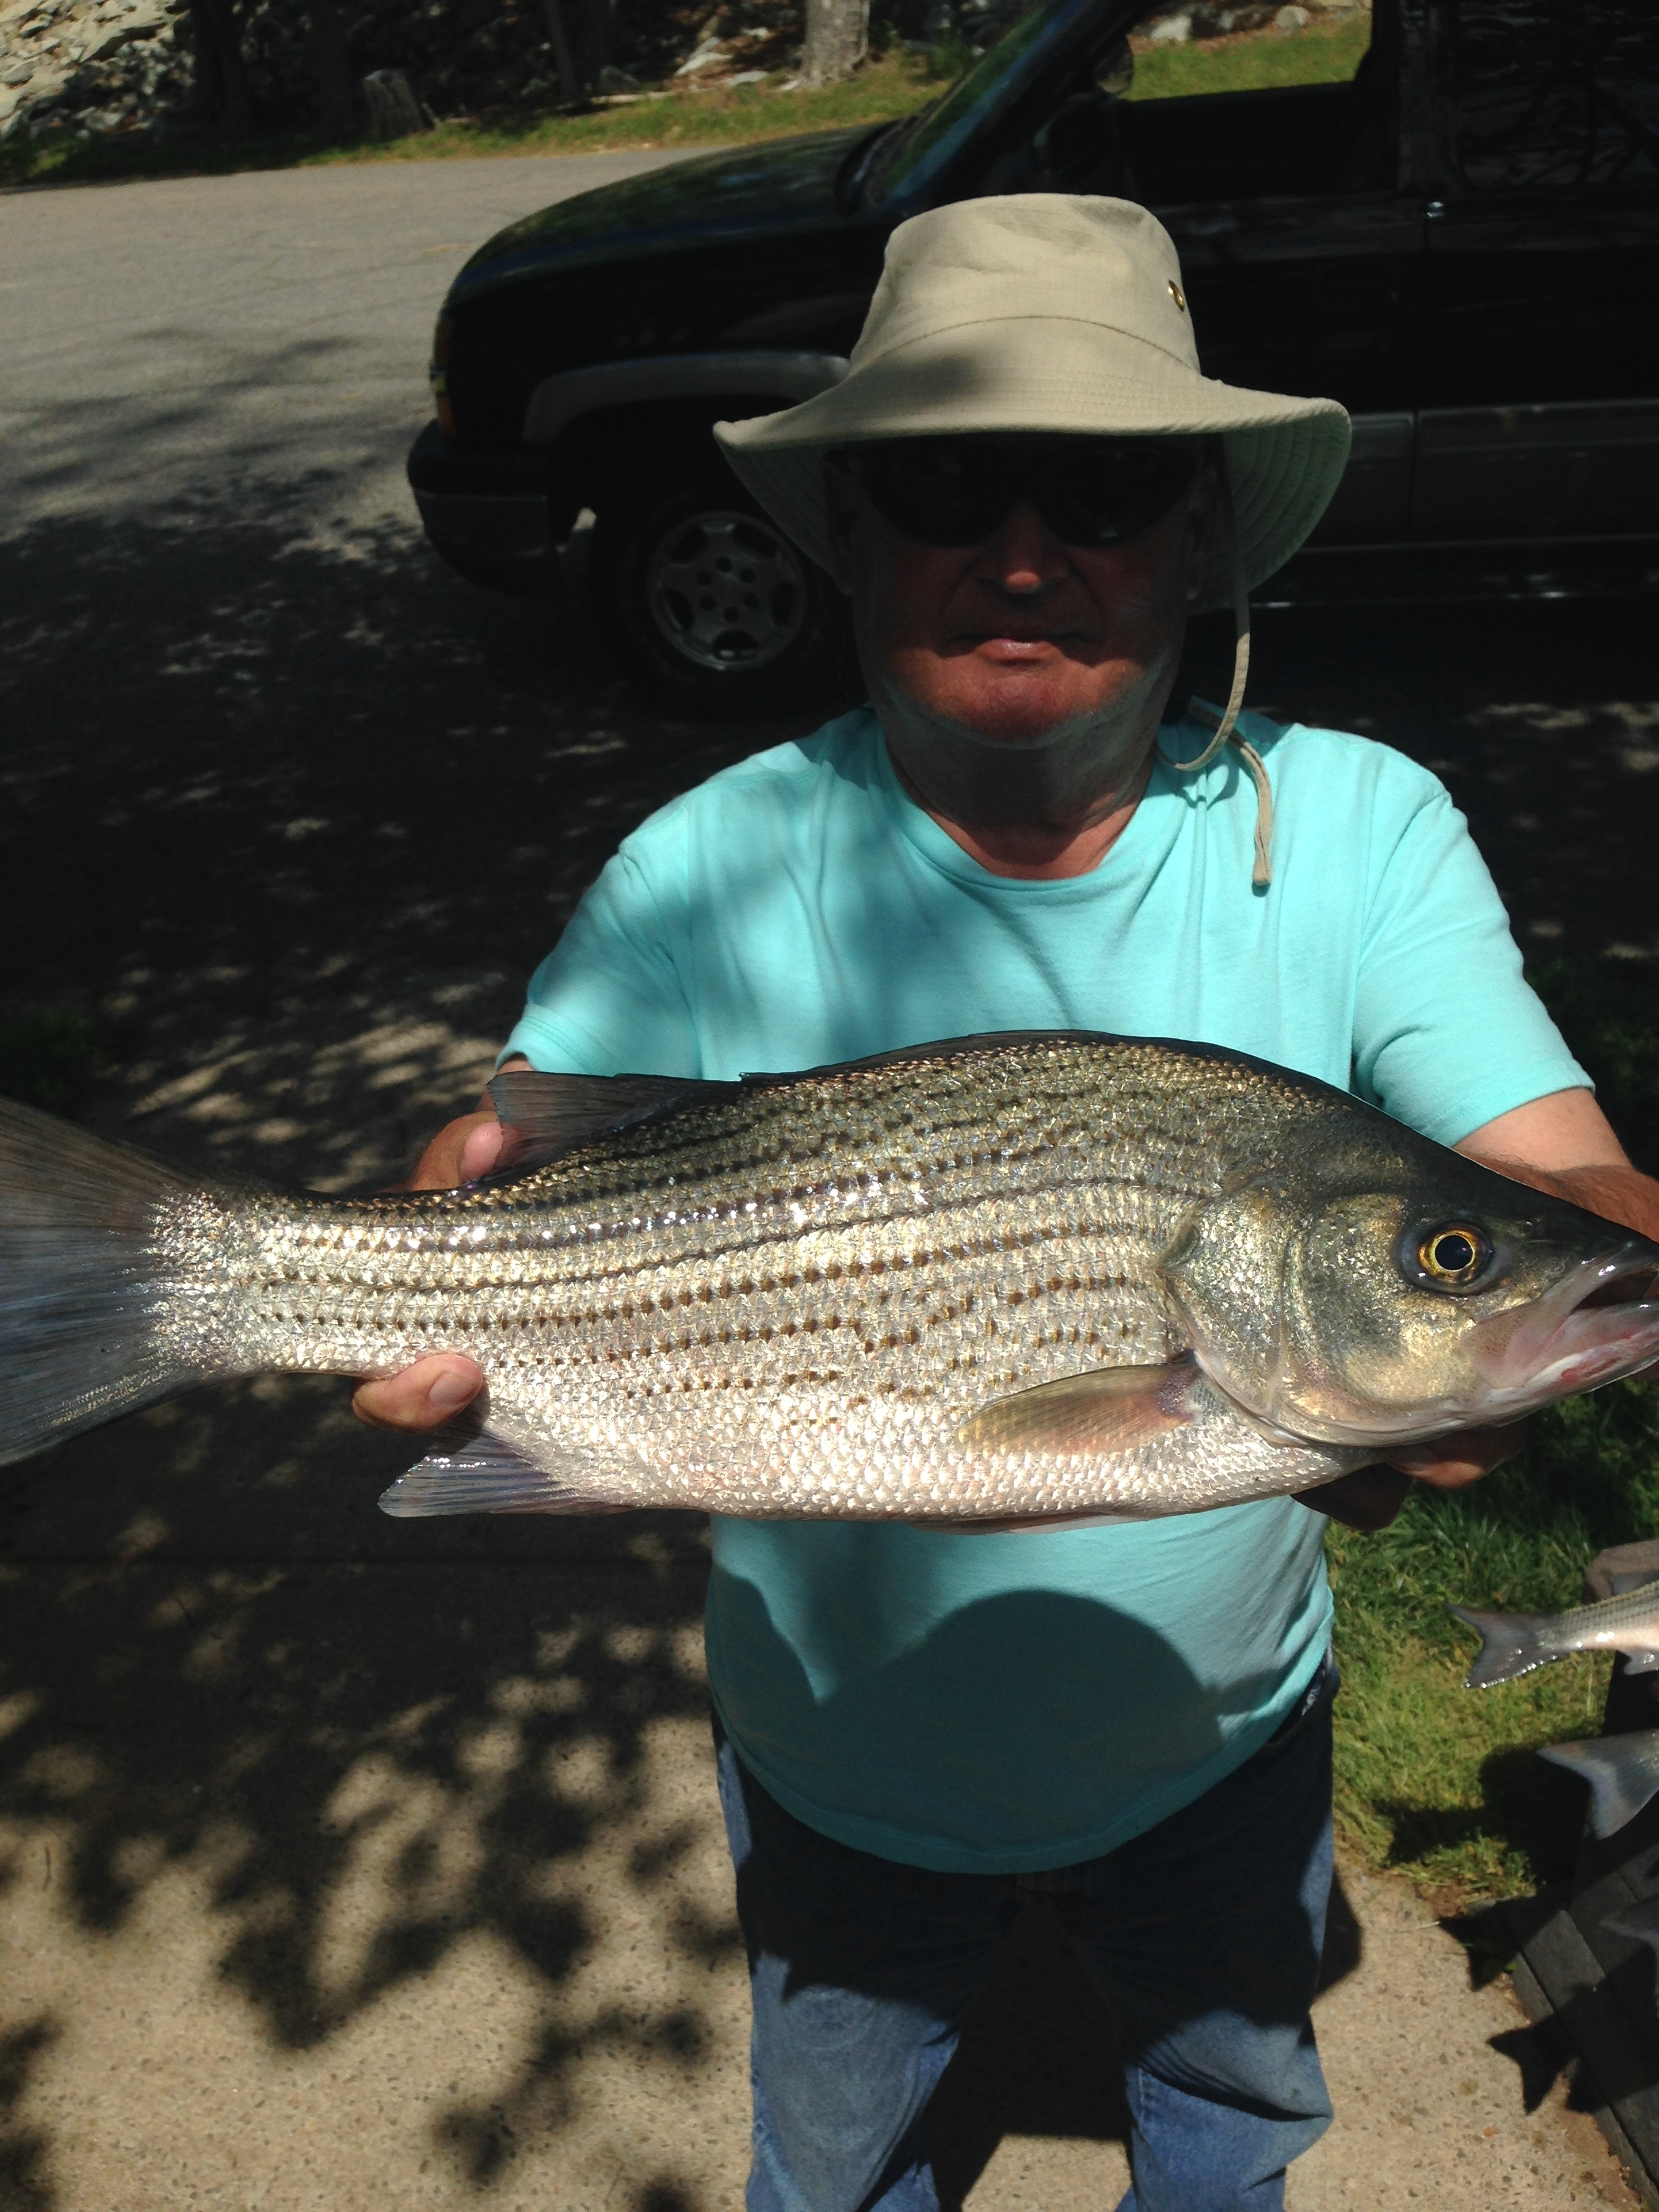 April 17, 2017 Ricky Cleghorn with his 7 lb hybrid